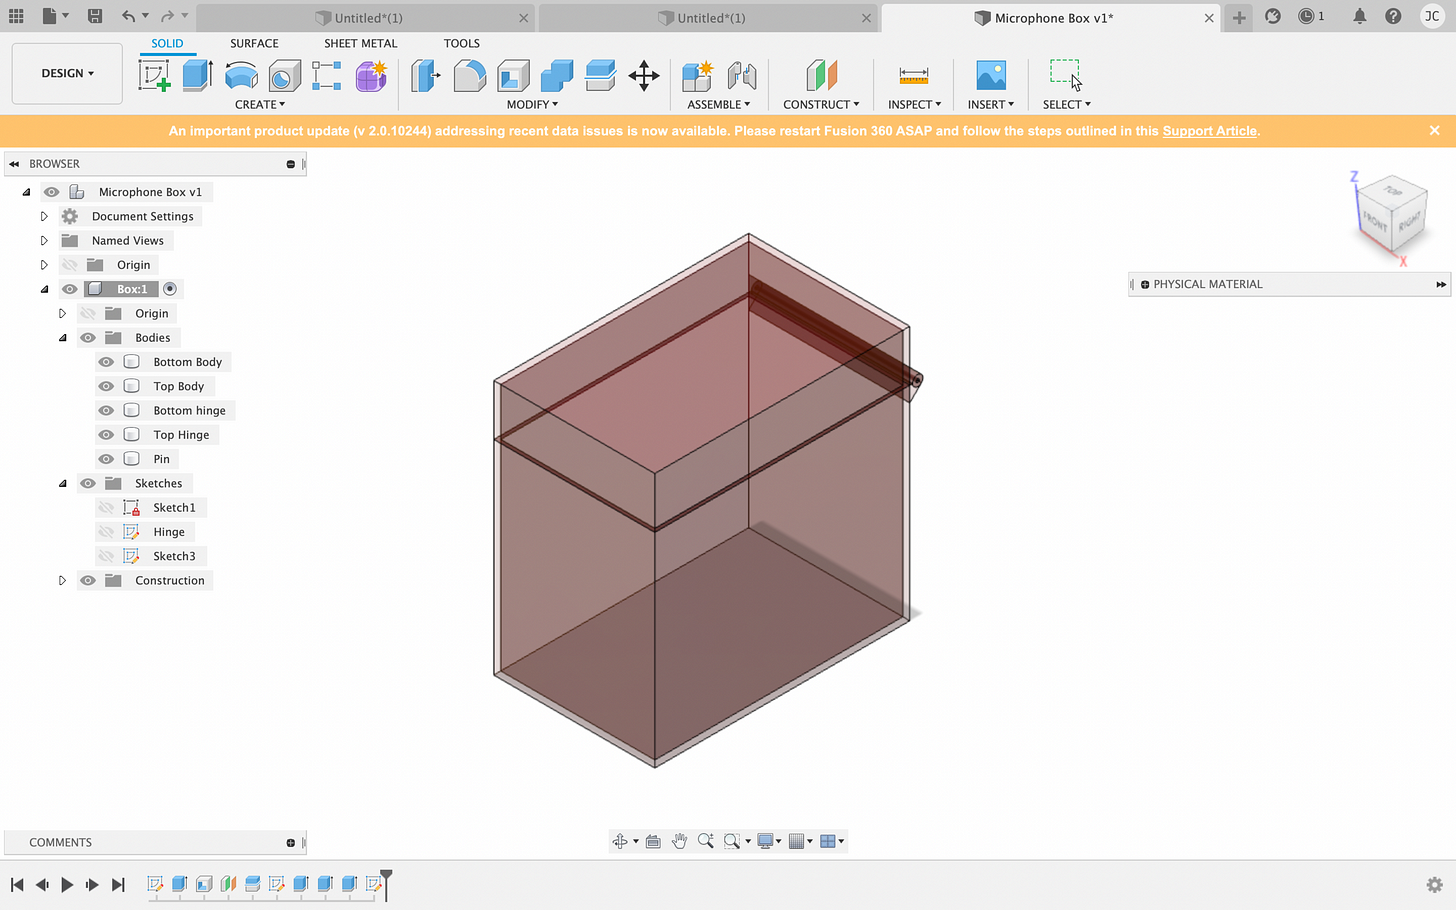 This image is from Fusion 360.